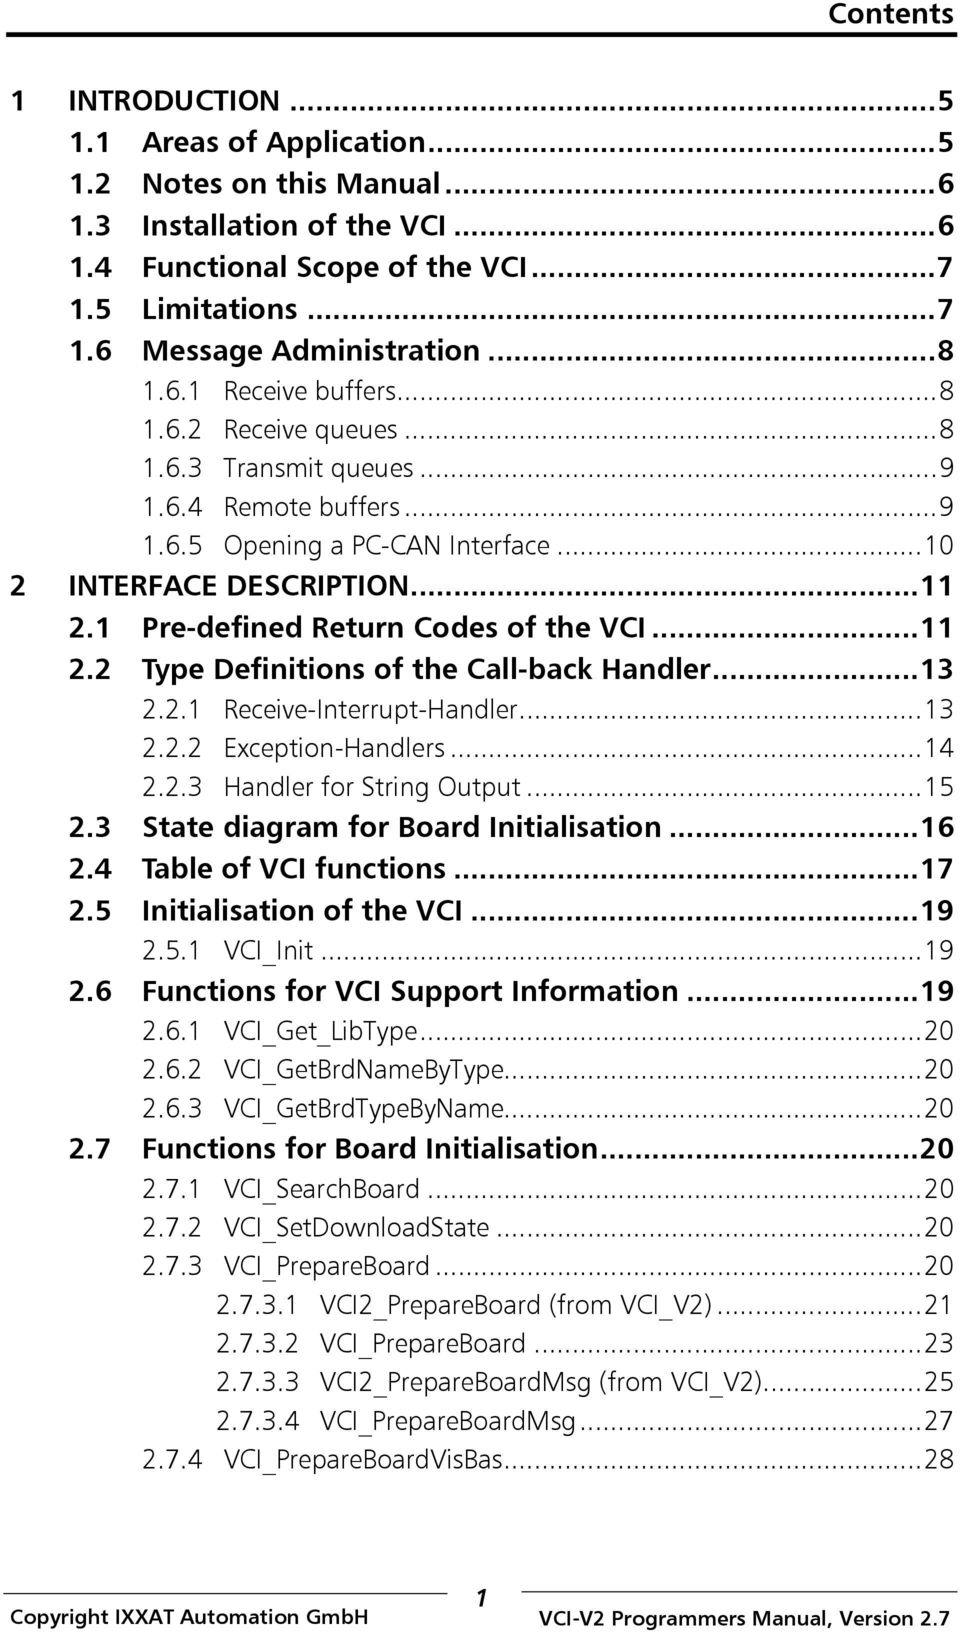 1 Pre-defined Return Codes of the VCI...11 2.2 Type Definitions of the Call-back Handler...13 2.2.1 Receive-Interrupt-Handler...13 2.2.2 Exception-Handlers...14 2.2.3 Handler for String Output...15 2.